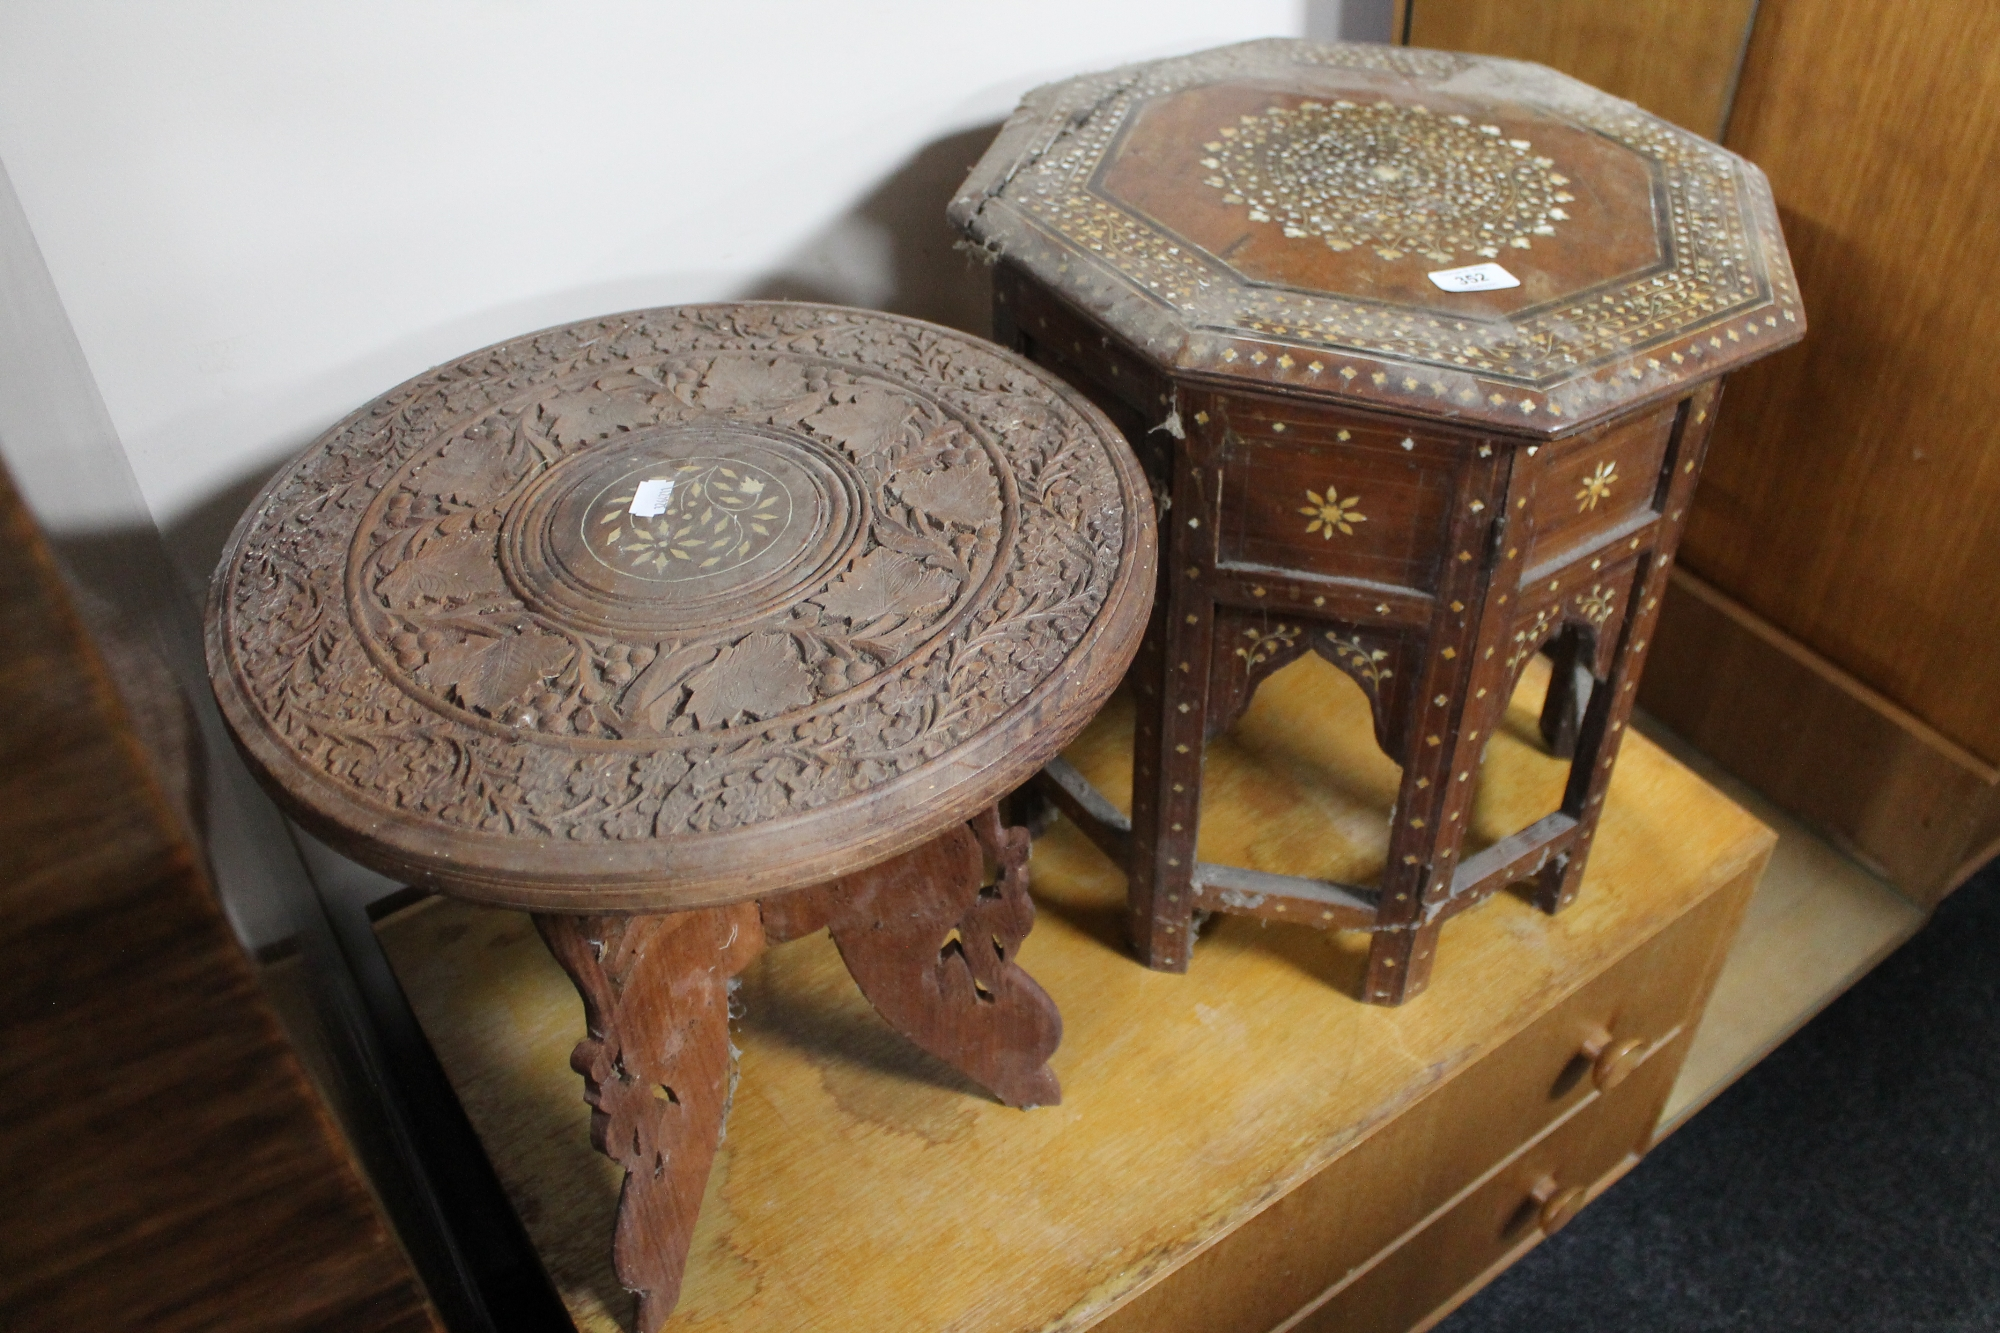 Lot 352 - An antique eastern inlaid ivory folding table and further carved table